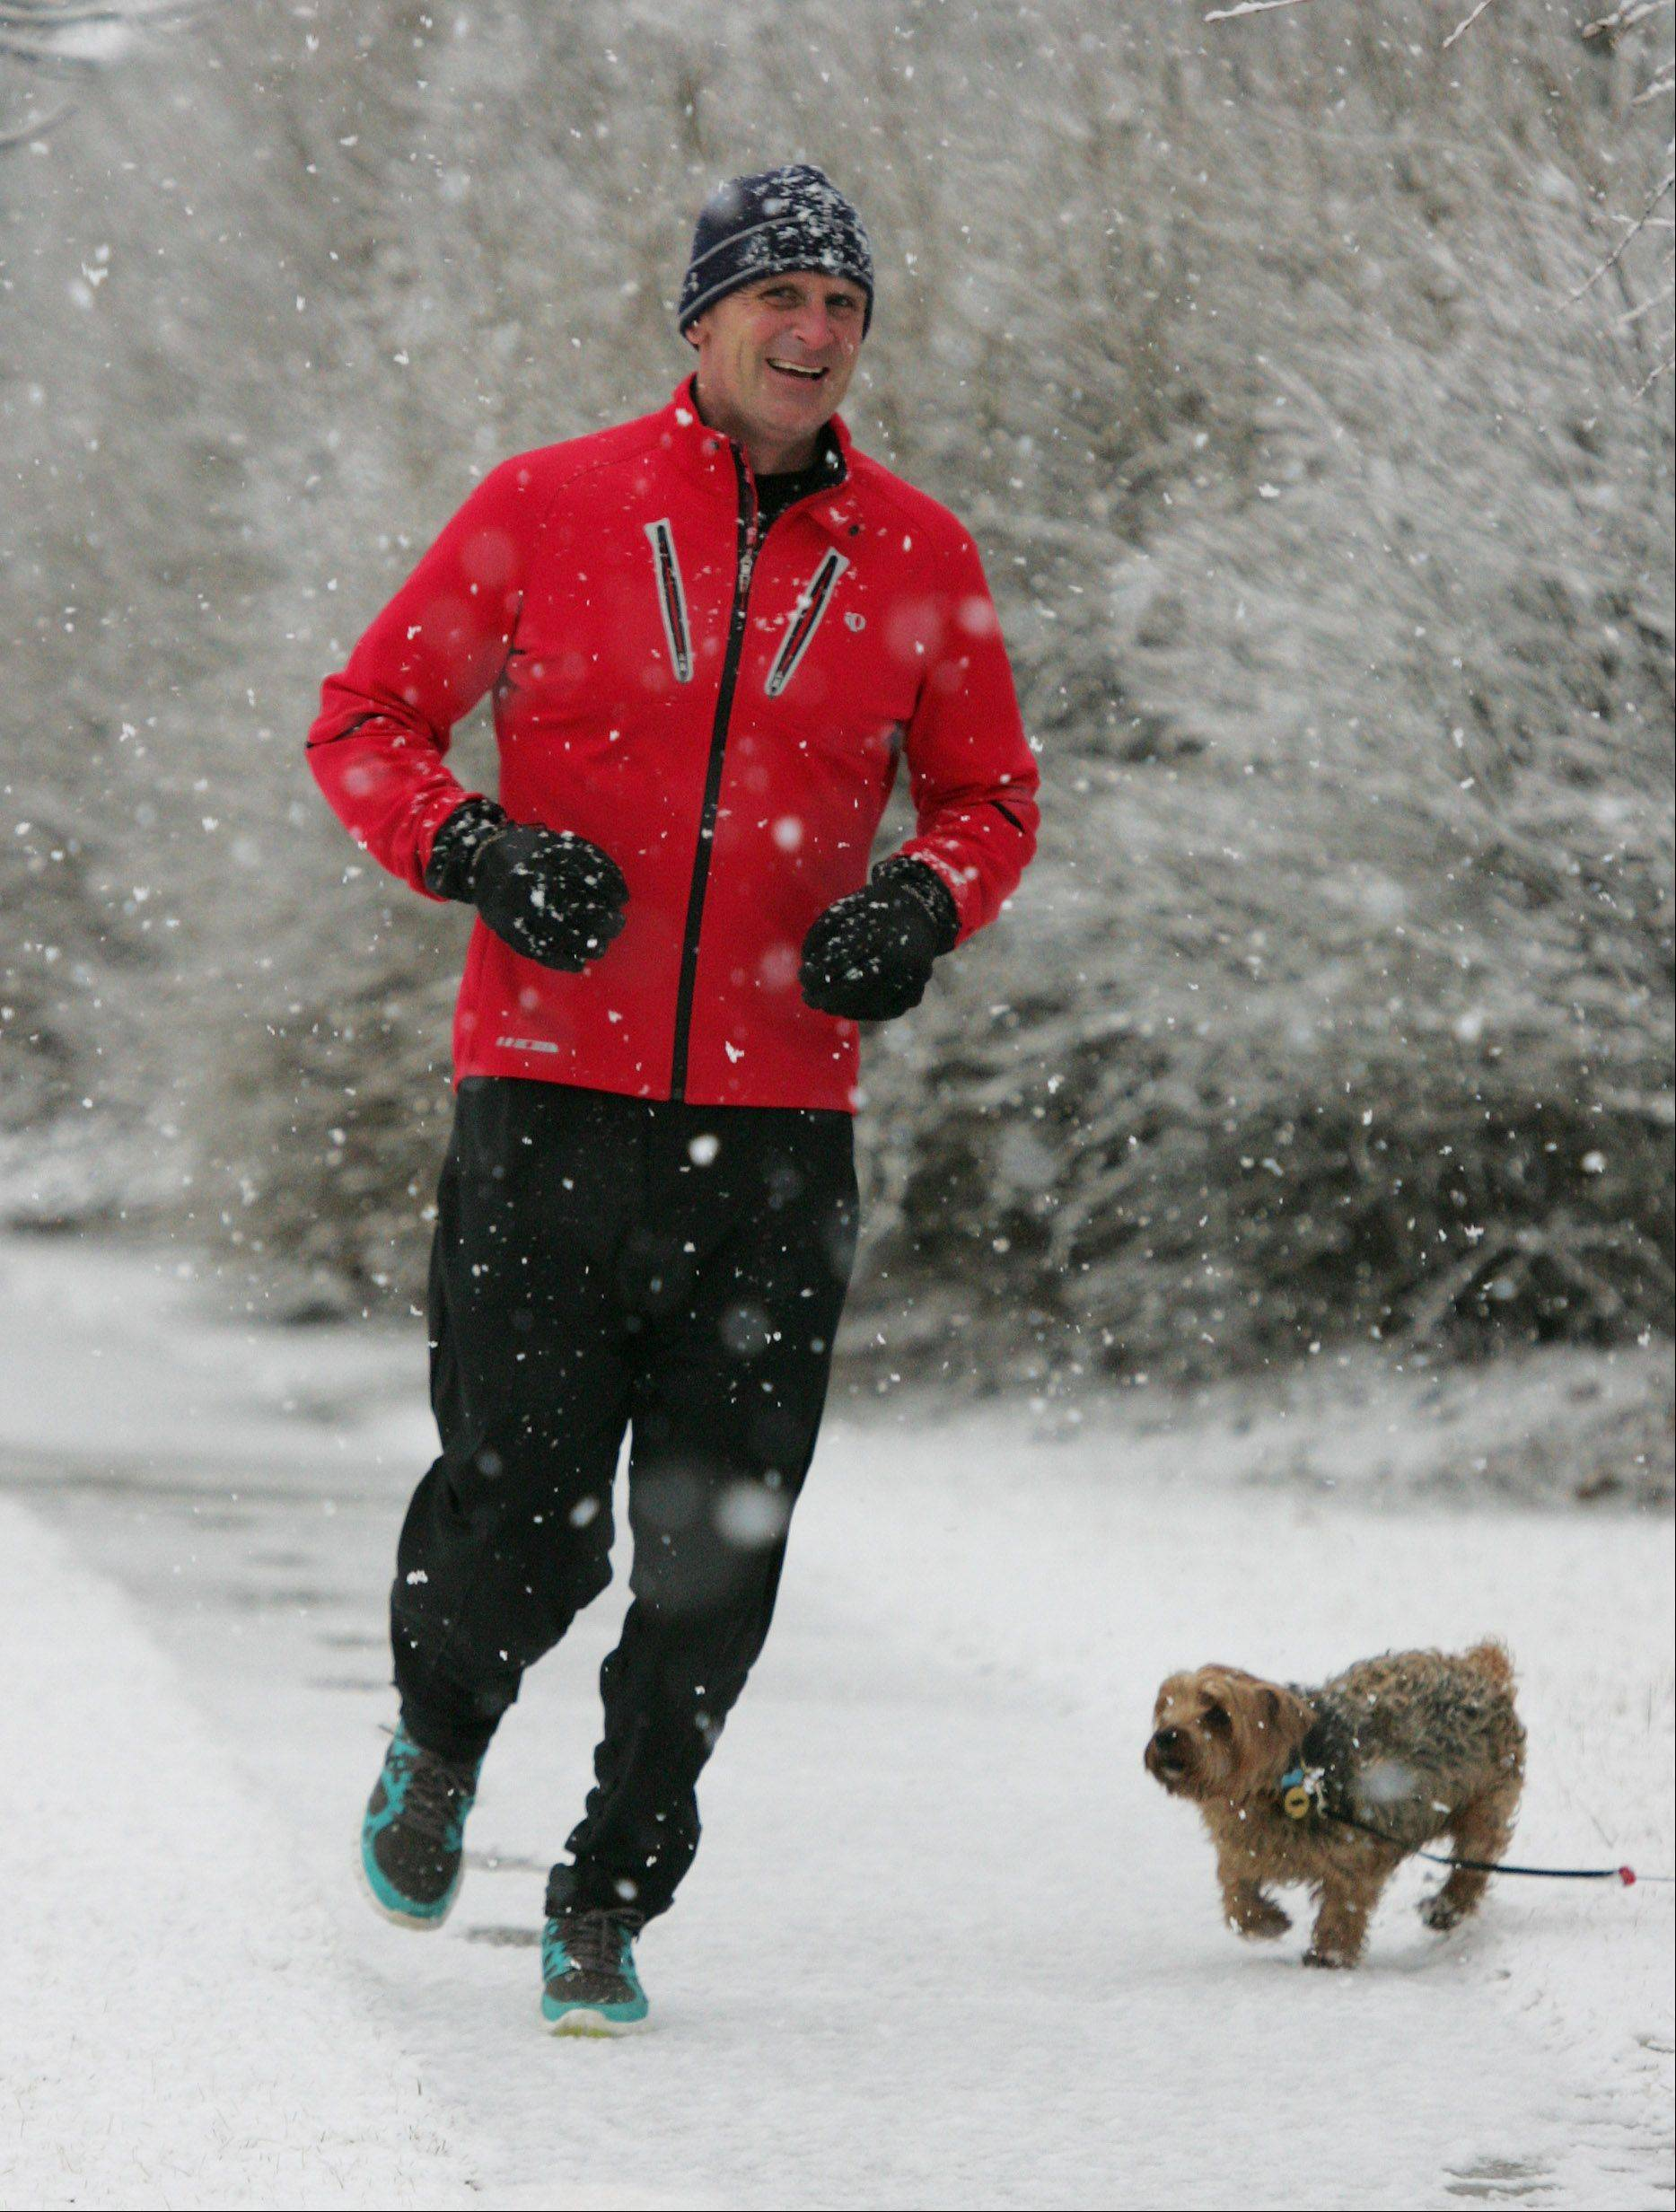 Rob Rayl of Mundelein runs by a dog as he jogs in the snow along Huntington Drive Thursday in Lake County. The snow was expected to disrupt afternoon commuter traffic.